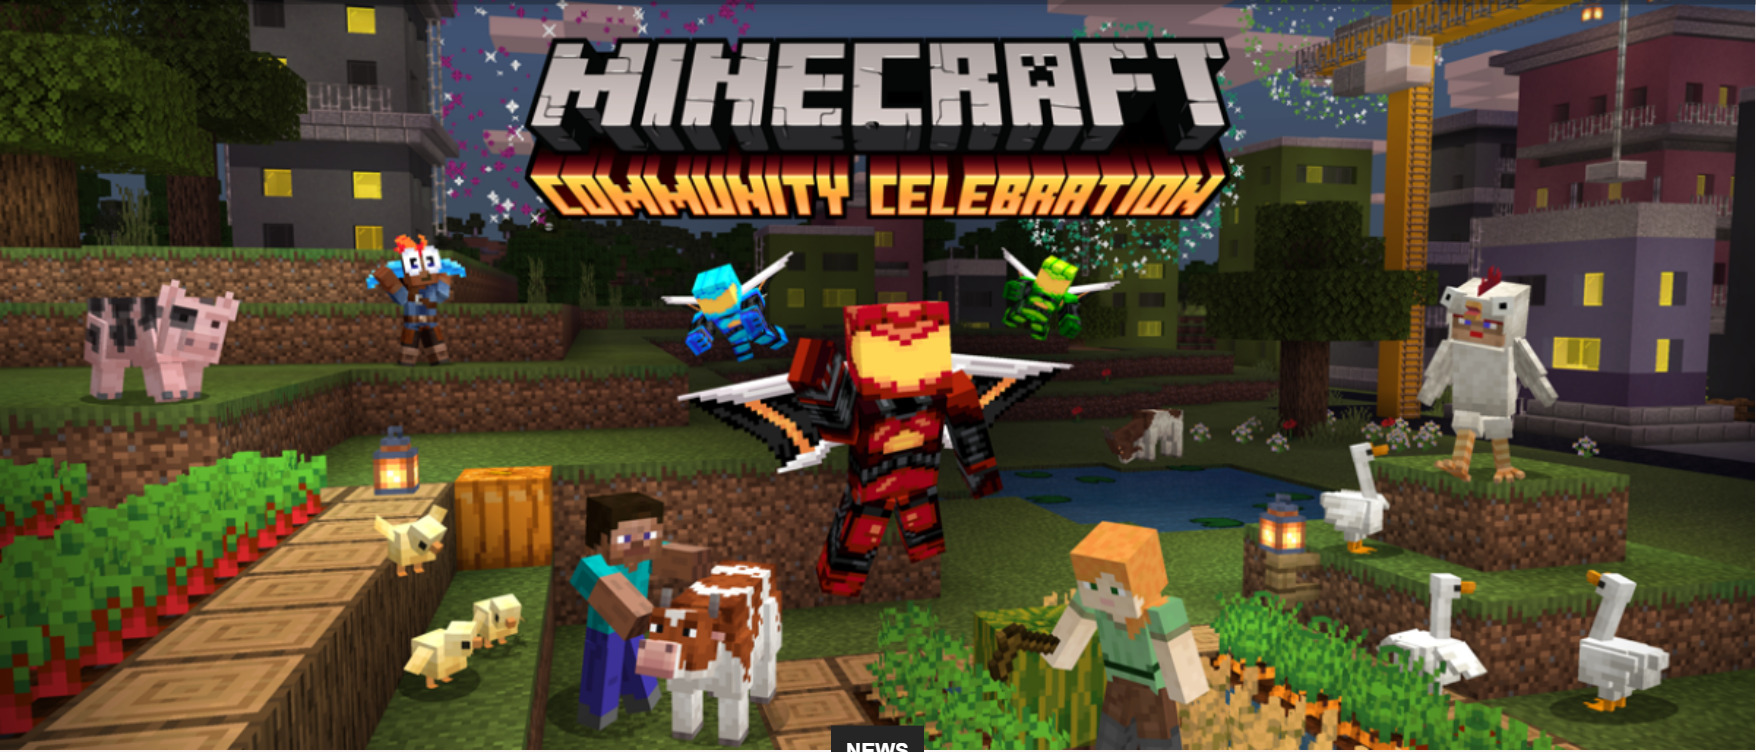 Minecraft Is Currently Having A Celebration, Giving Away Free Items And User Content